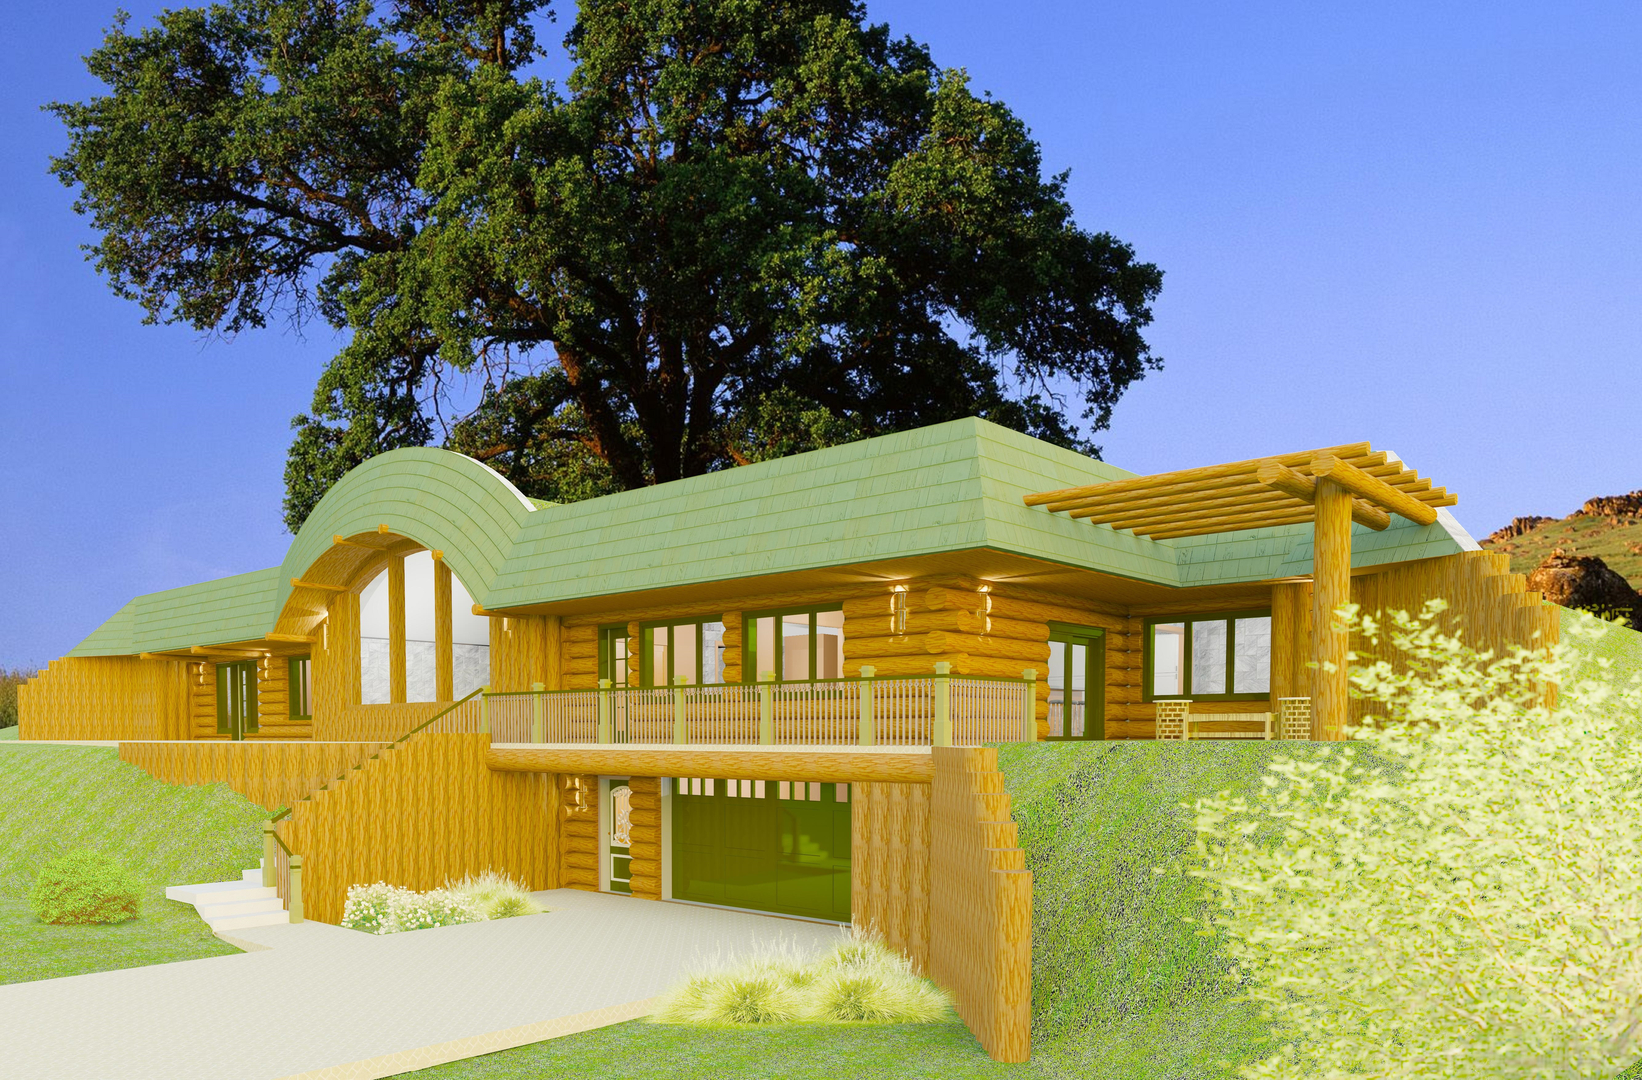 Earthen Homes Design Plans Html on underground building plans, simple underground house plans, small underground house plans, earth house plans, tire houses plans, in ground house plans, berm home floor plans, underground bunker floor plans,